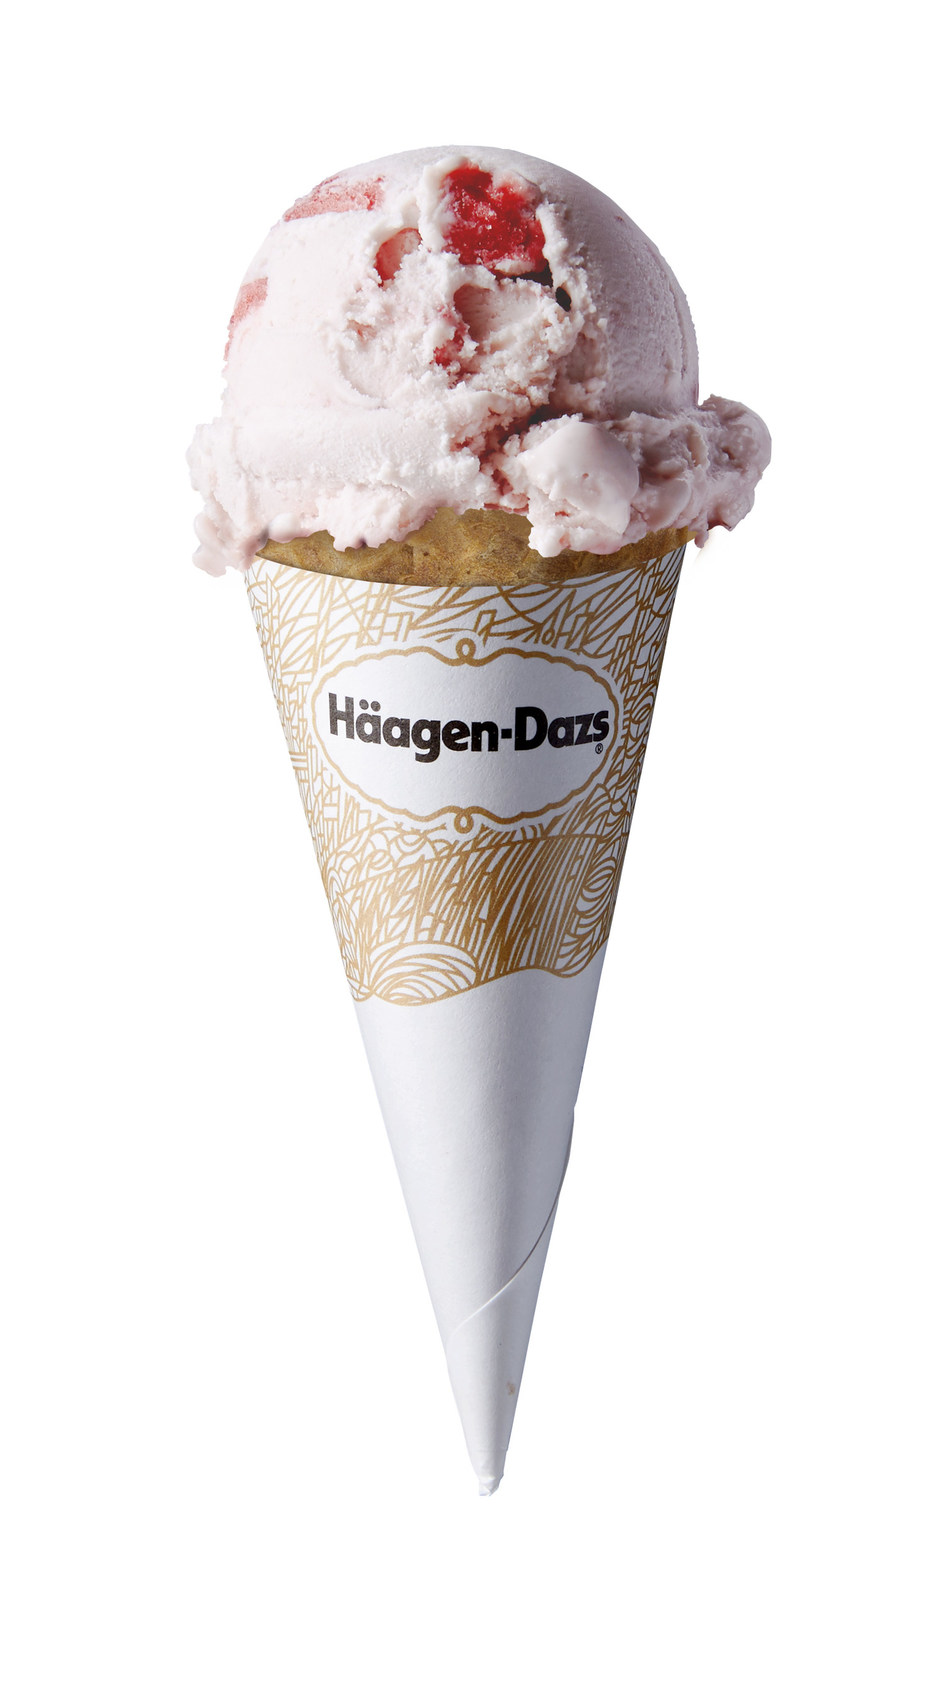 Visit participating Häagen-Dazs Shops in the United States between 4 p.m. and 8 p.m. on Tuesday, May 9, 2017 to receive one free scoop of ice cream or sorbet in a cup, sugar cone or cake cone.